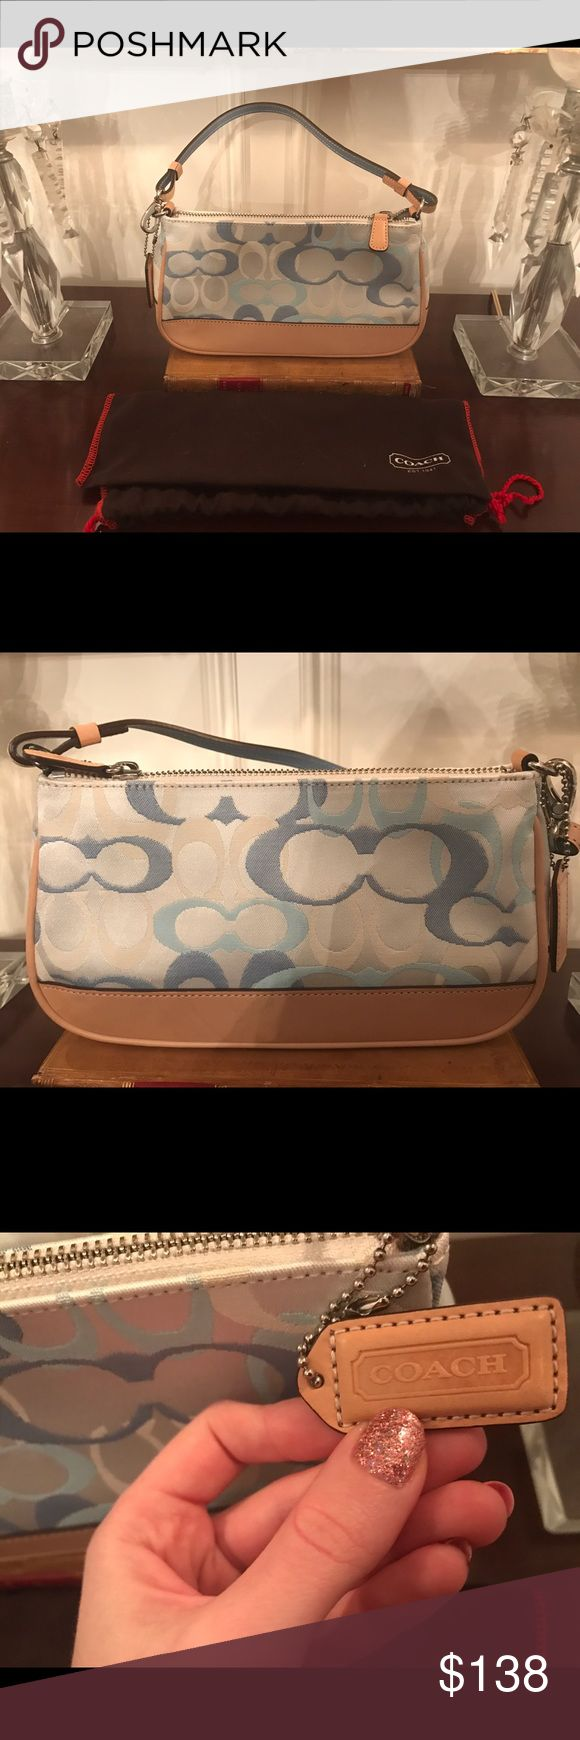 Brand New Coach Limited Edition Pochette - Blue Brand new, never used limited edition pochette by Coach. No marks, no flaws. Inside is absolutely clean. Serial number on inside leather tag. Comes with original dust bag. Coach Bags